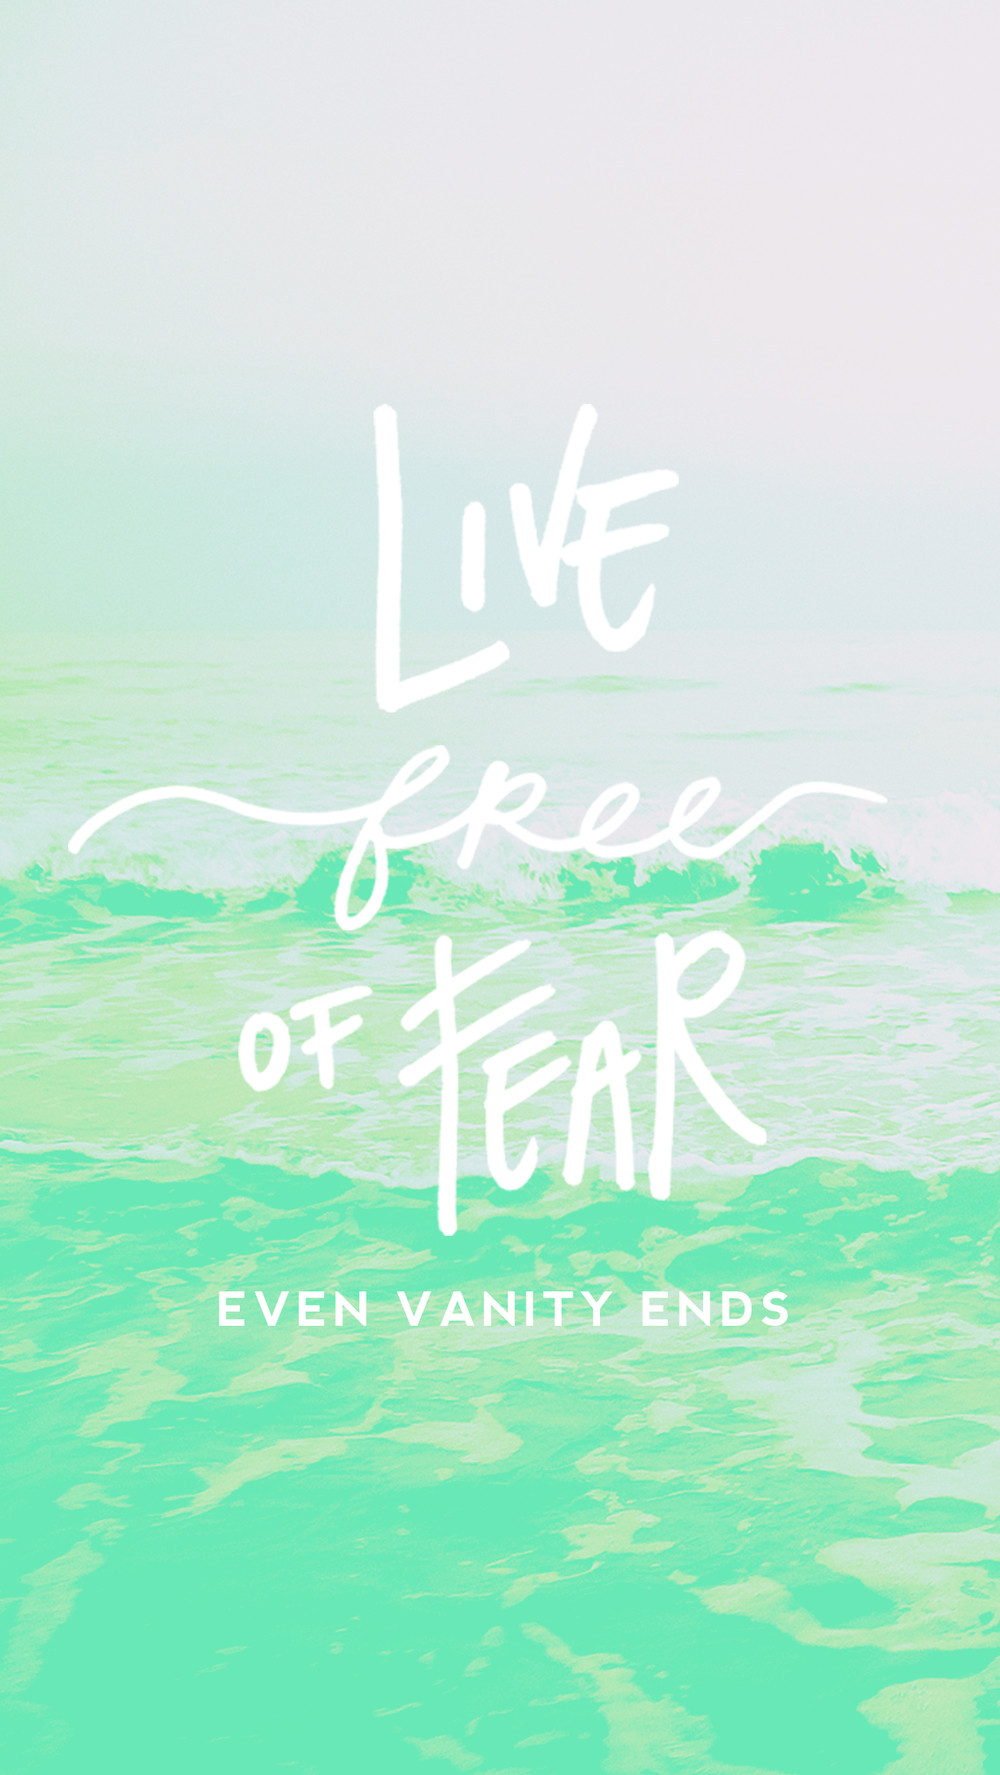 even-vanity-ends-live-free-of-fear-phone-wallpaper-green.jpg